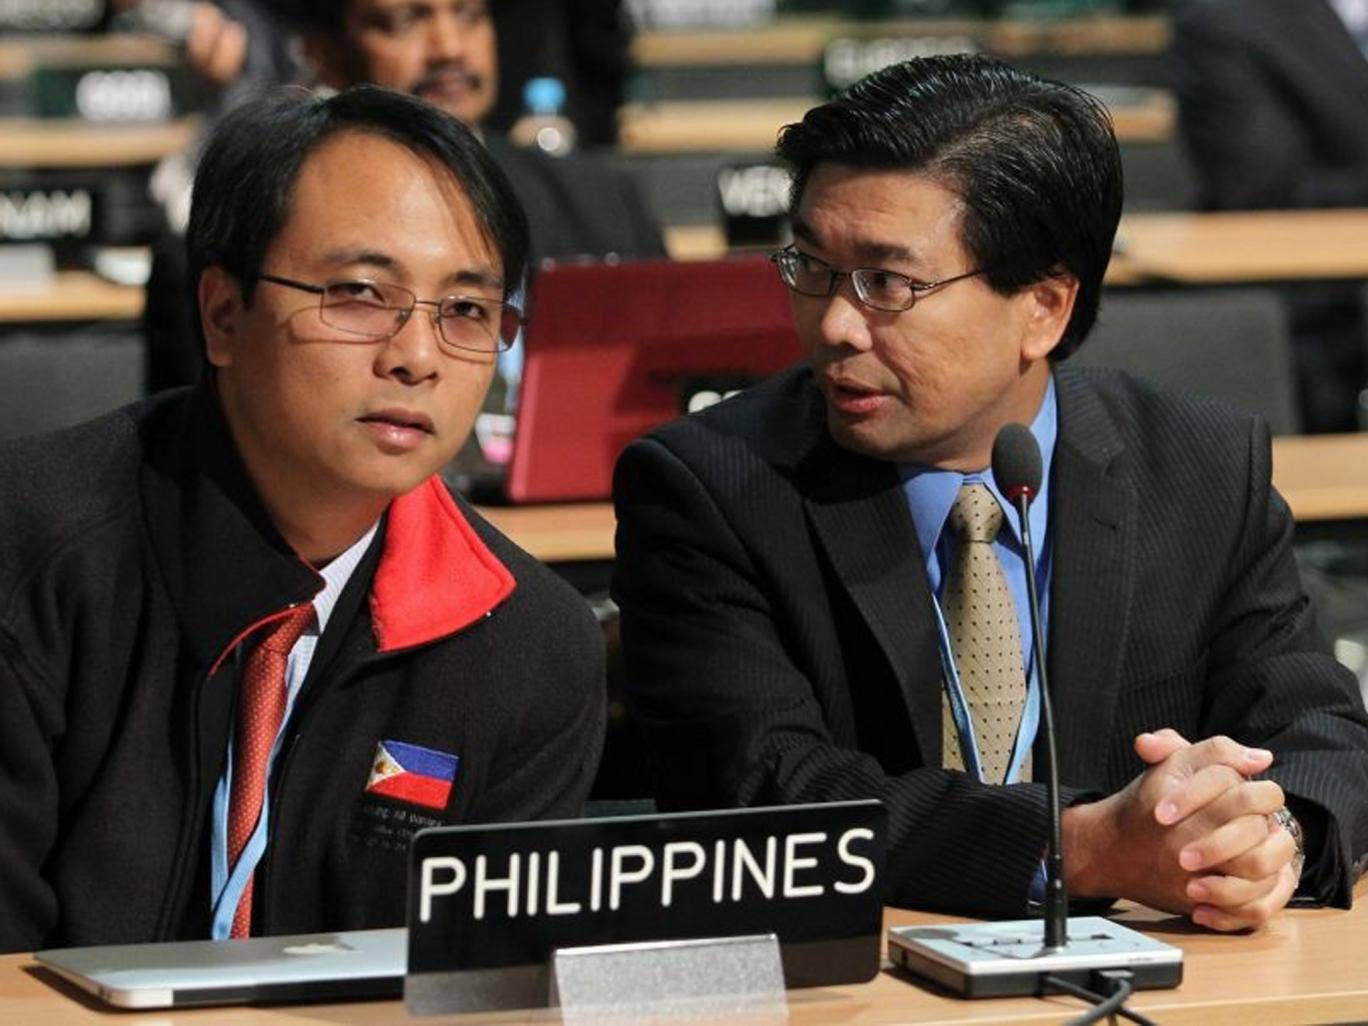 Filipino delegates Naderev Sano, left, and Vicente Paolo Yu III